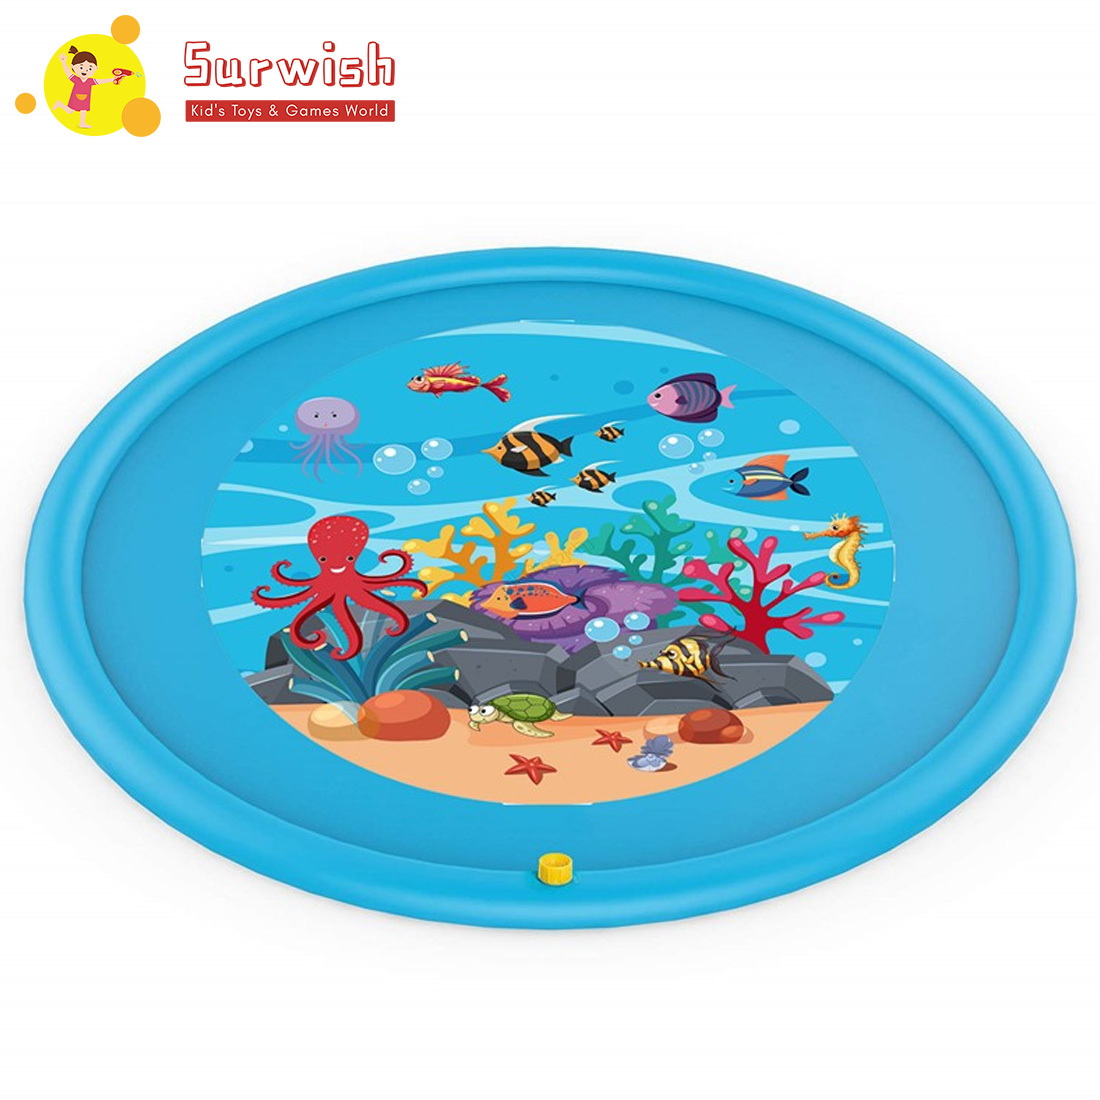 Summer Sprinkler Play Mat Wading Pool Splash Pad Inflatable Water Toys For Kids - Blue